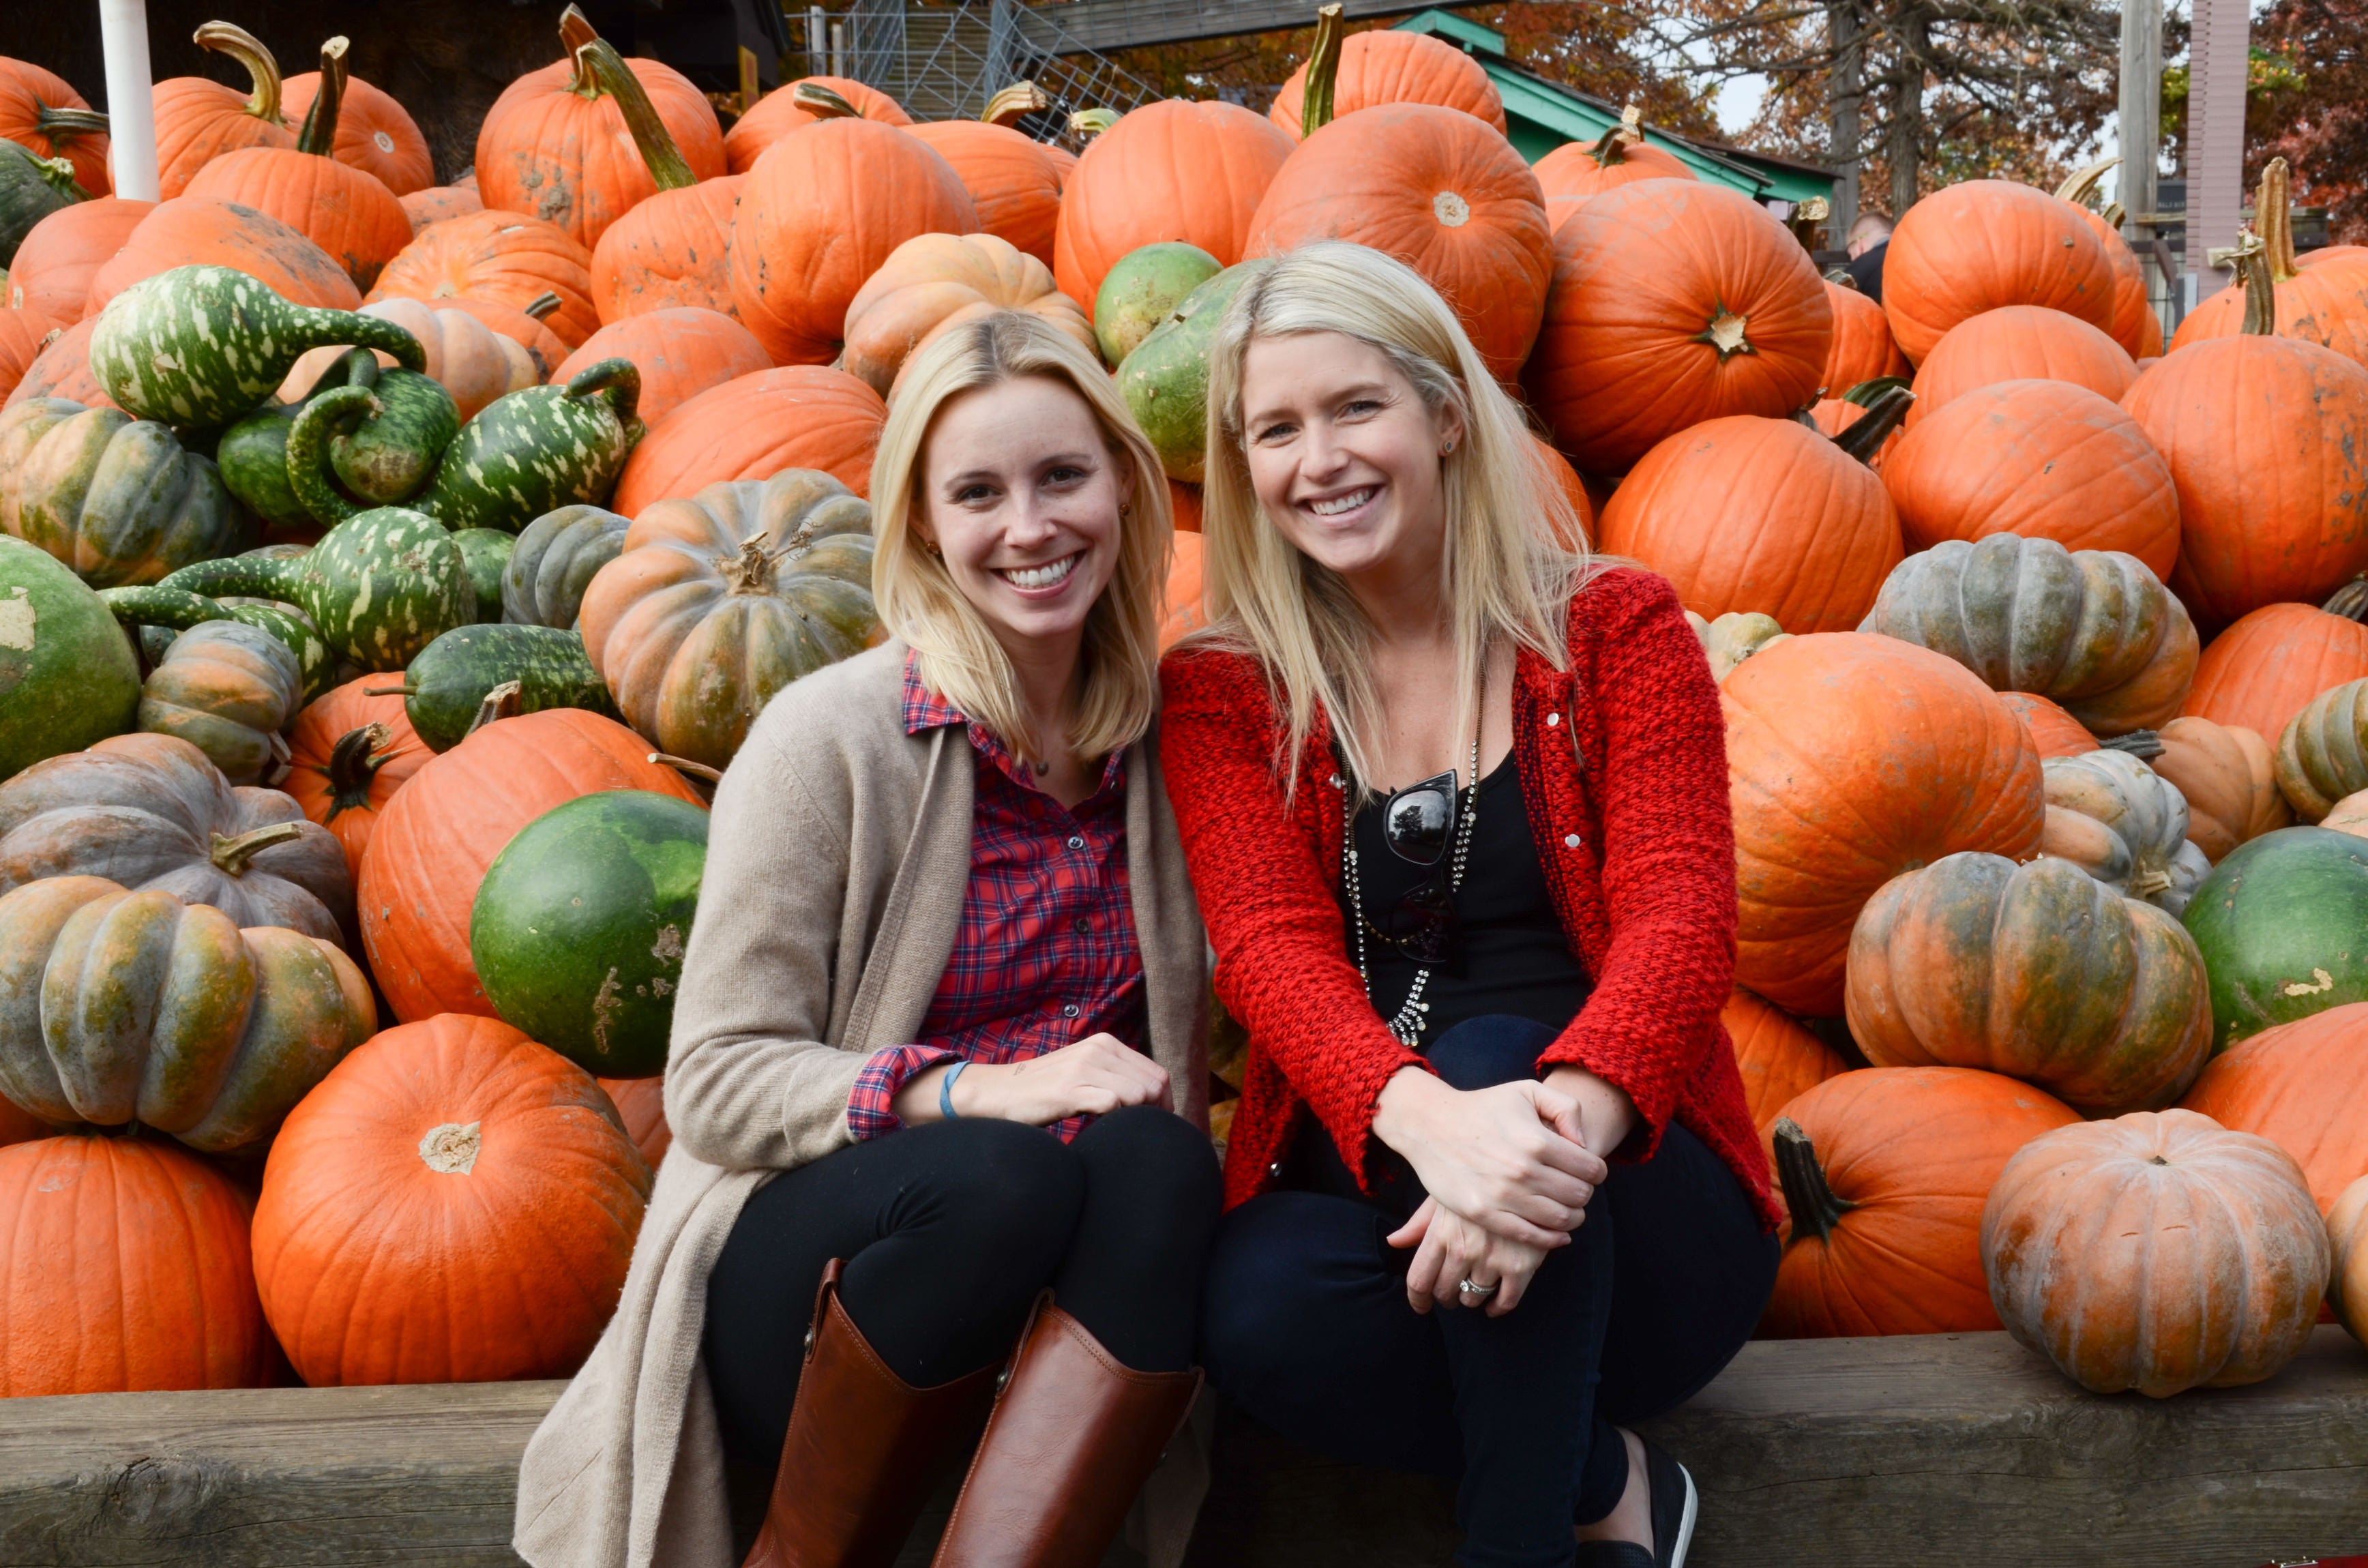 ashley murphy, molly graves, pumpkin patch, neat method, home organizers, neat, hot blondes, cute girls, neat cofounders, neat method, bengtson's pumpkin farm